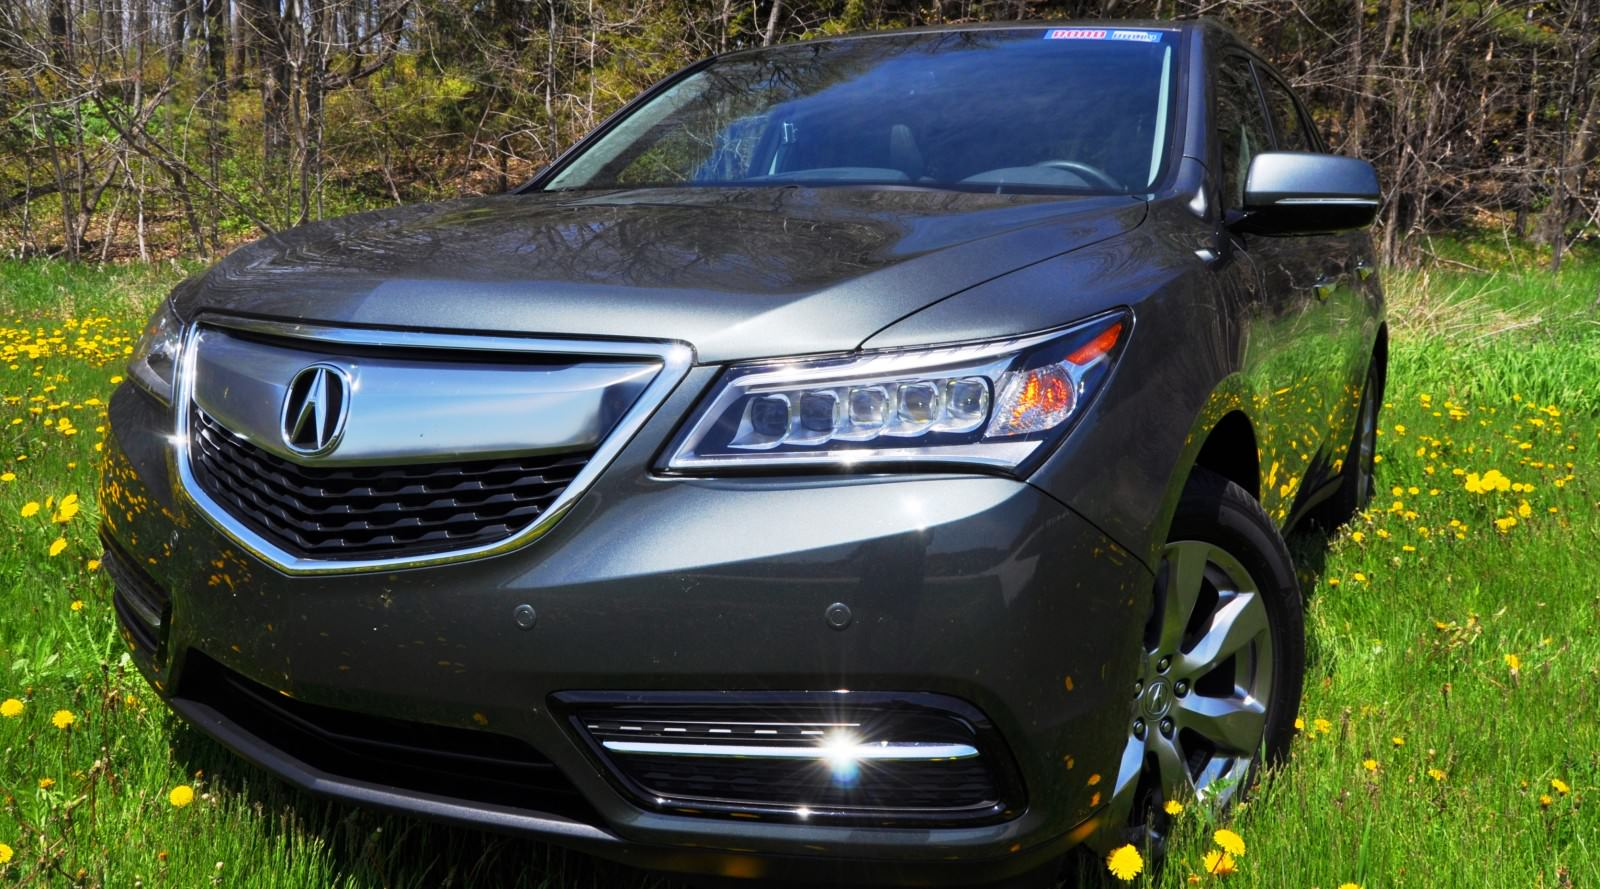 road test review 2014 acura mdx sh awd is premium and posh 7 seat cruiser. Black Bedroom Furniture Sets. Home Design Ideas